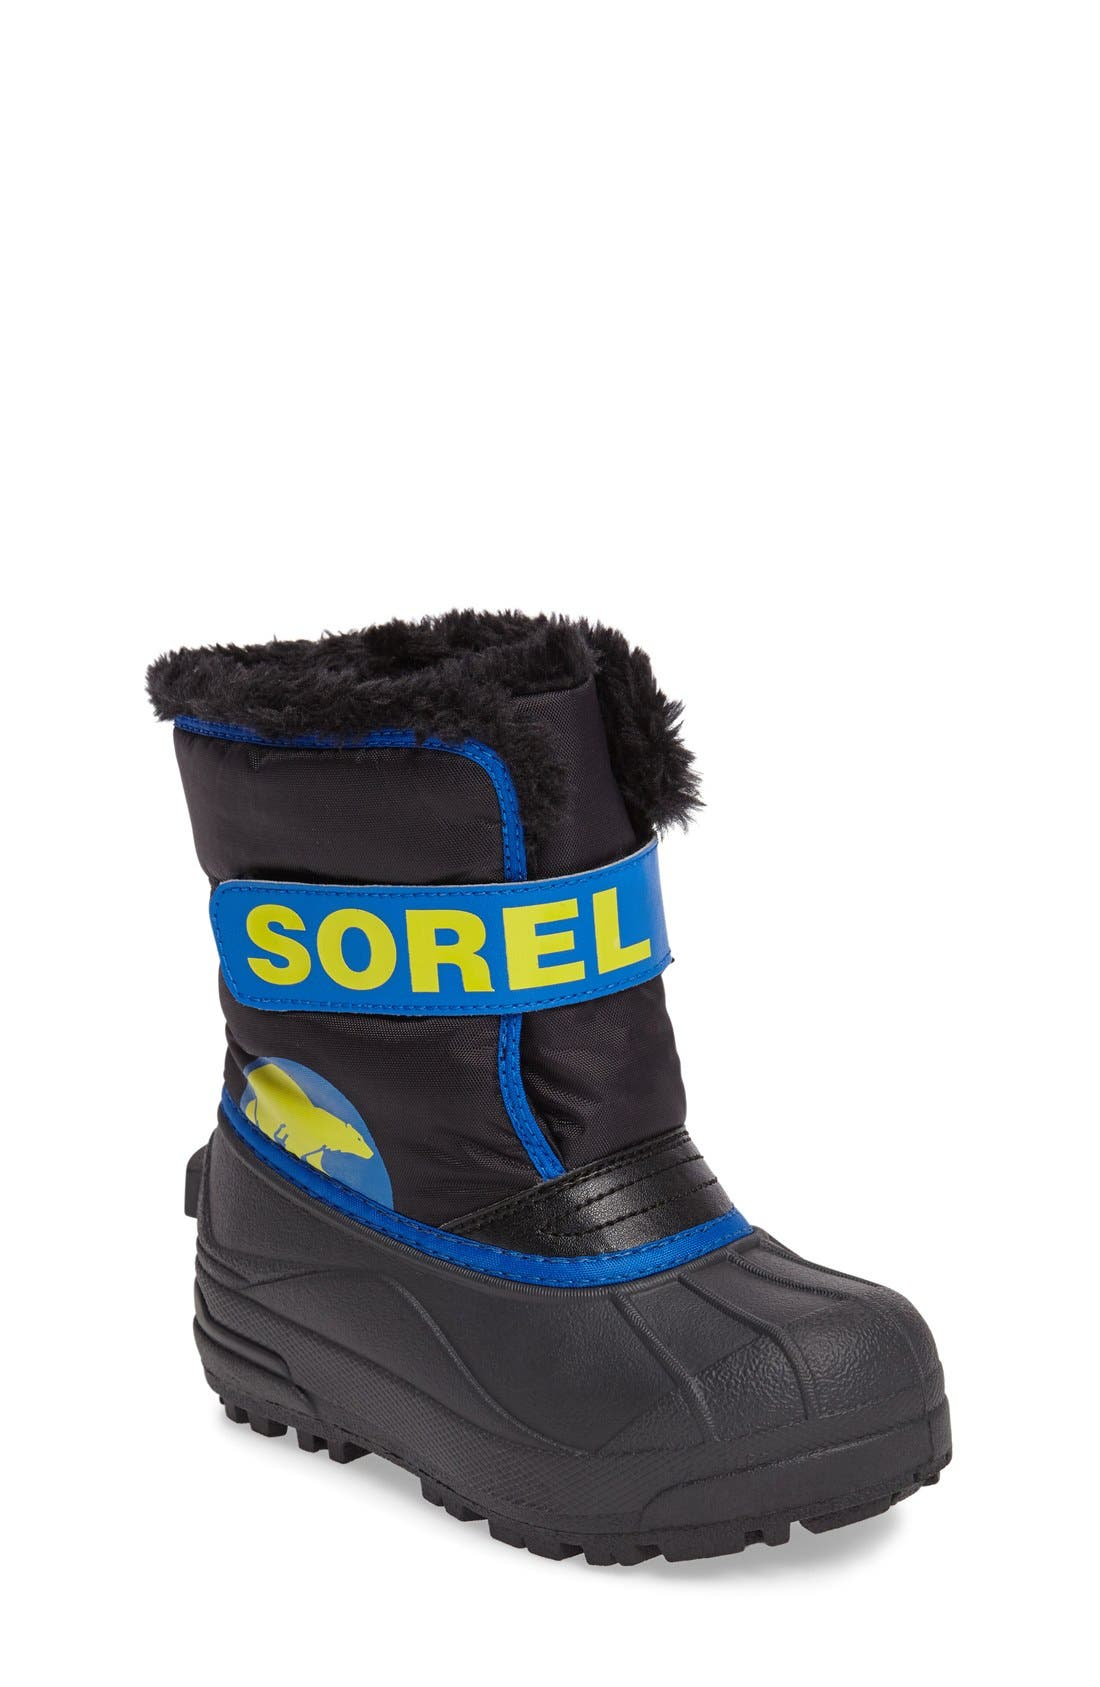 SOREL 'Snow Commander' Boot, Main, color, 011